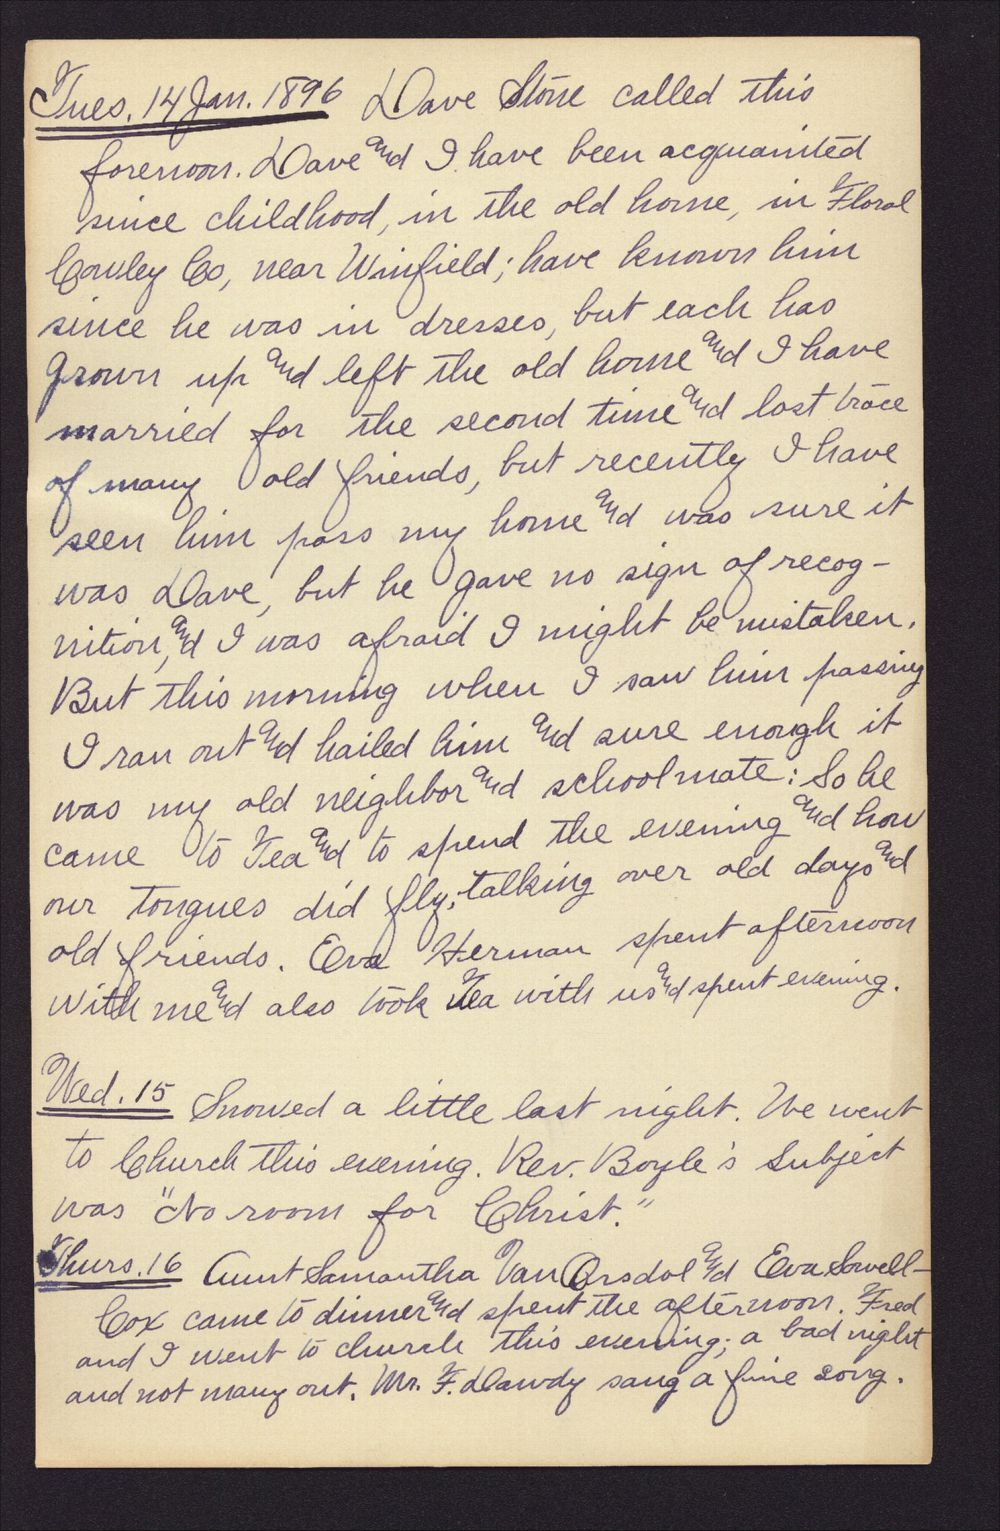 Martha Farnsworth diary - Jan 14, 1896